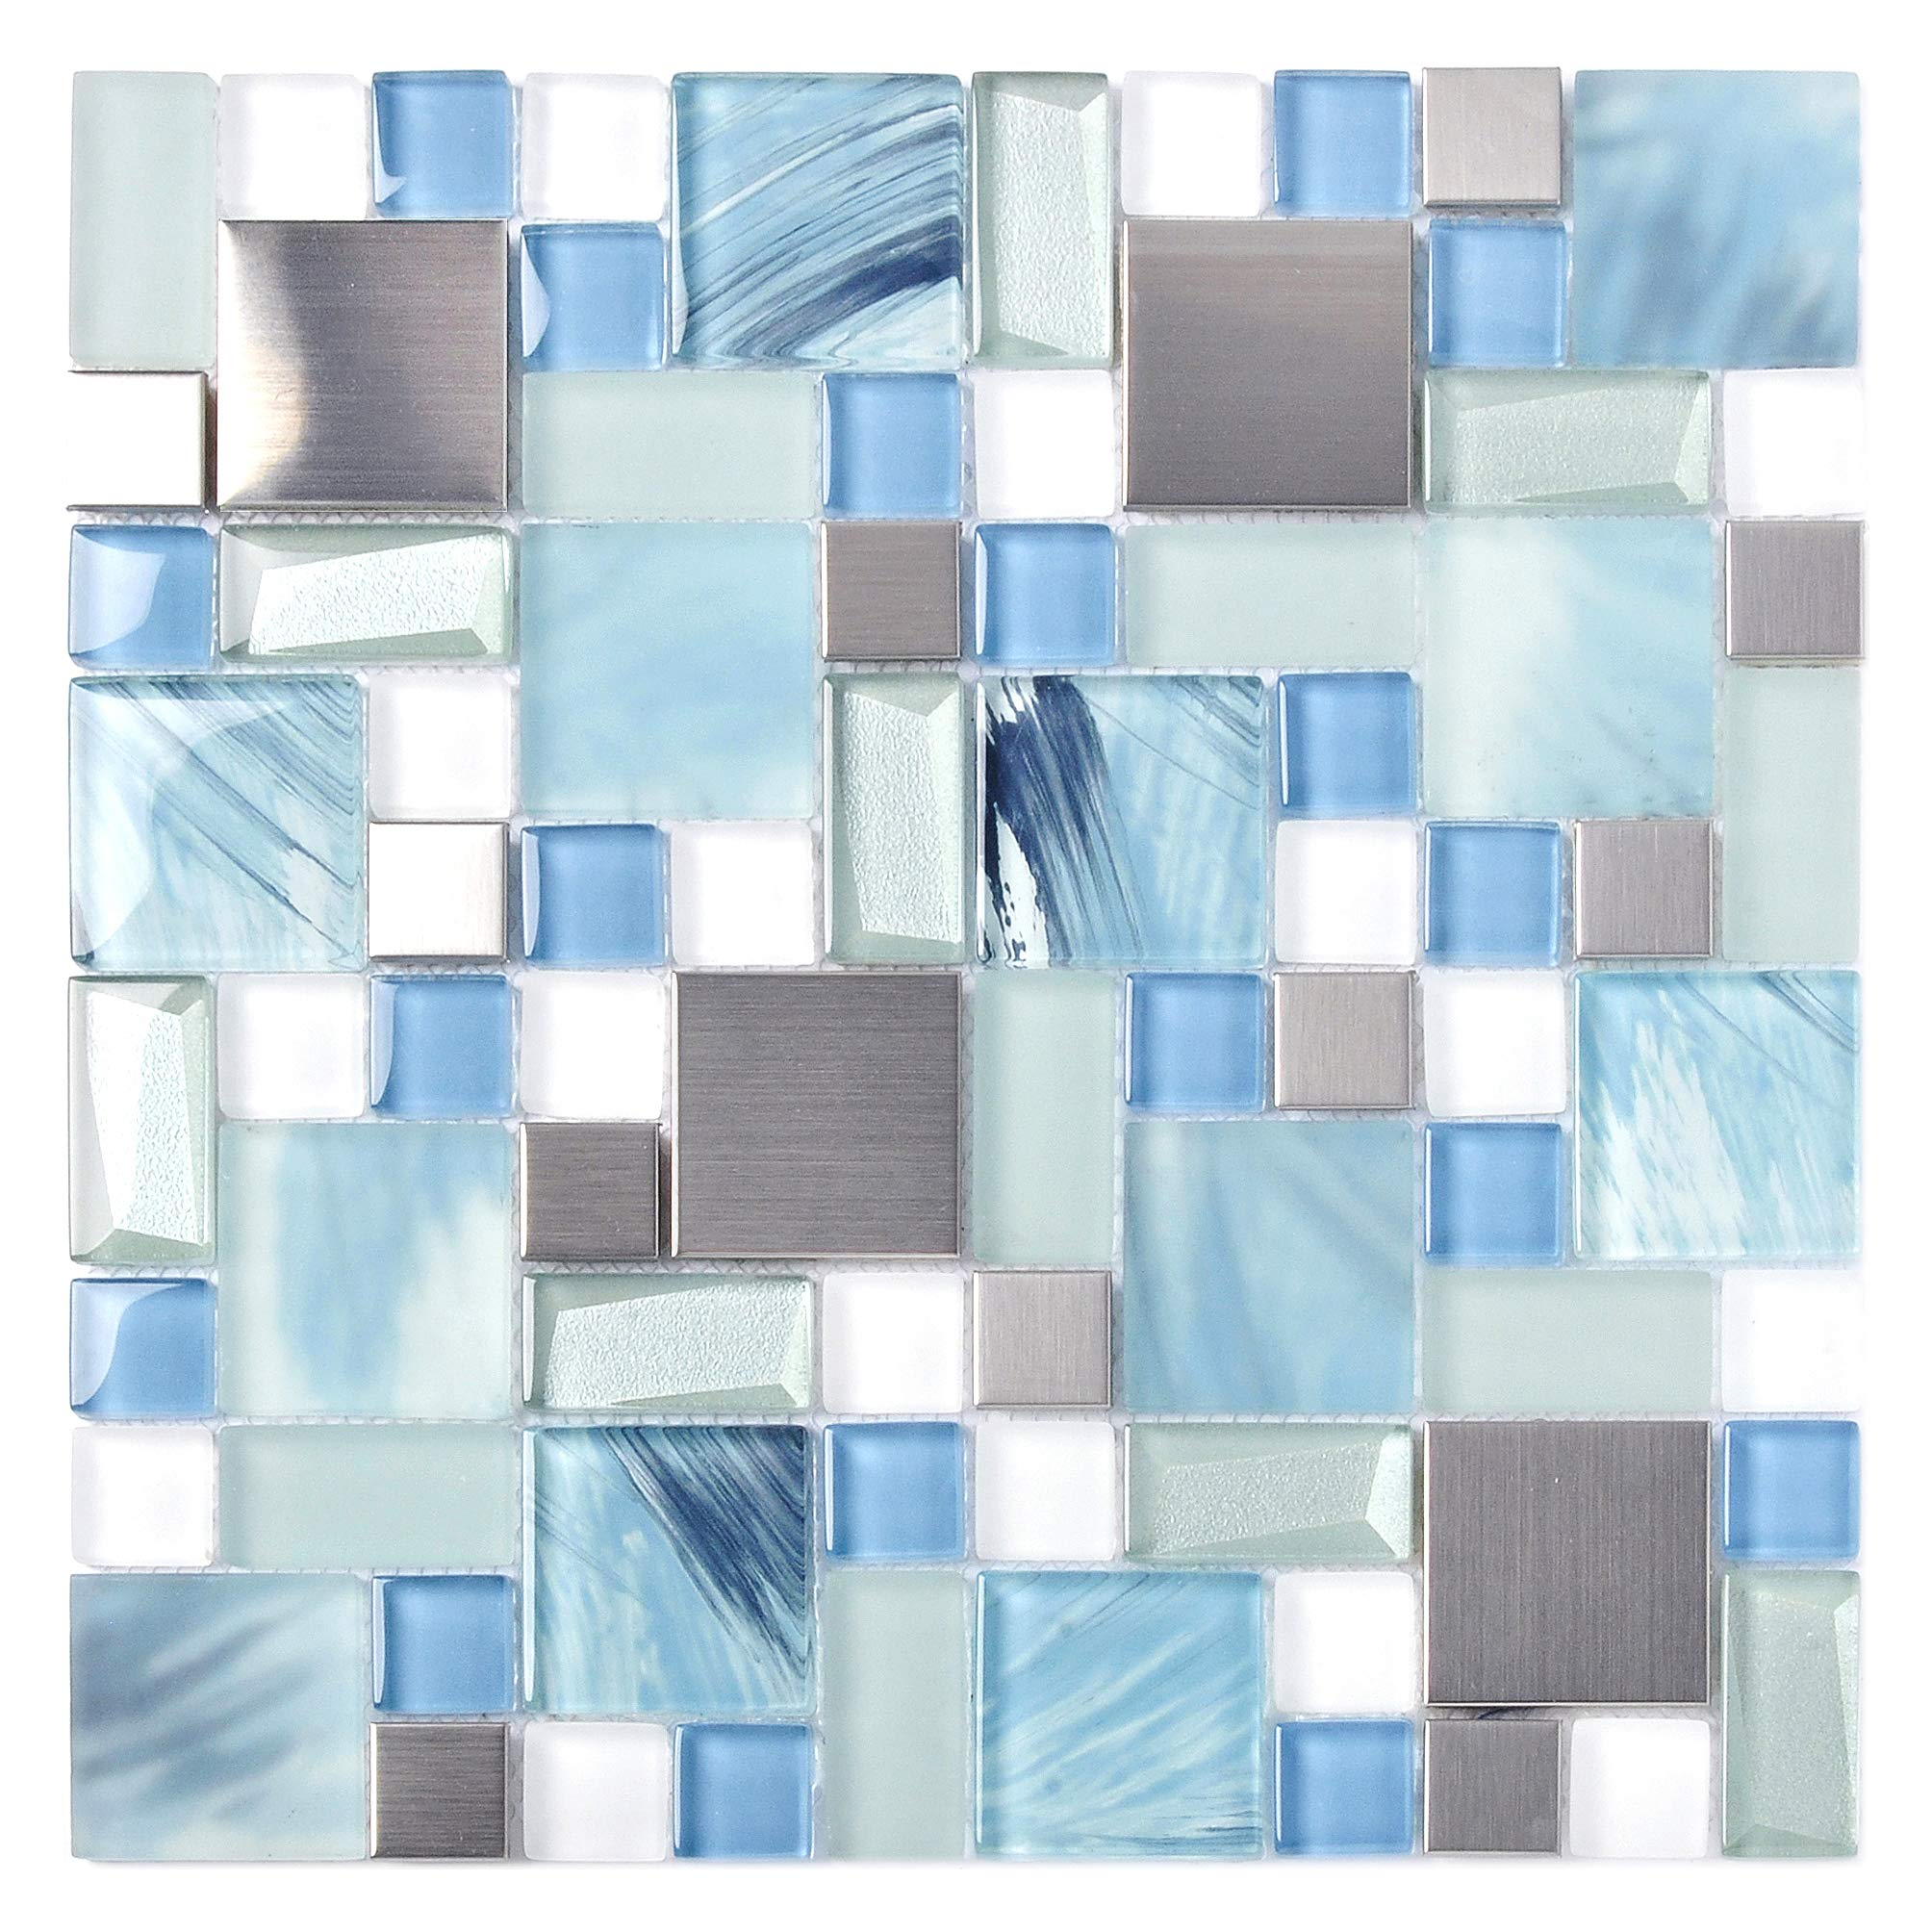 Sea Blue Green Glass Stainless Steel Tile White Kitchen Bath Backsplash Artistic Mosaic TSTMGB028 (5 Square Feet) by BLUJELLYFISH